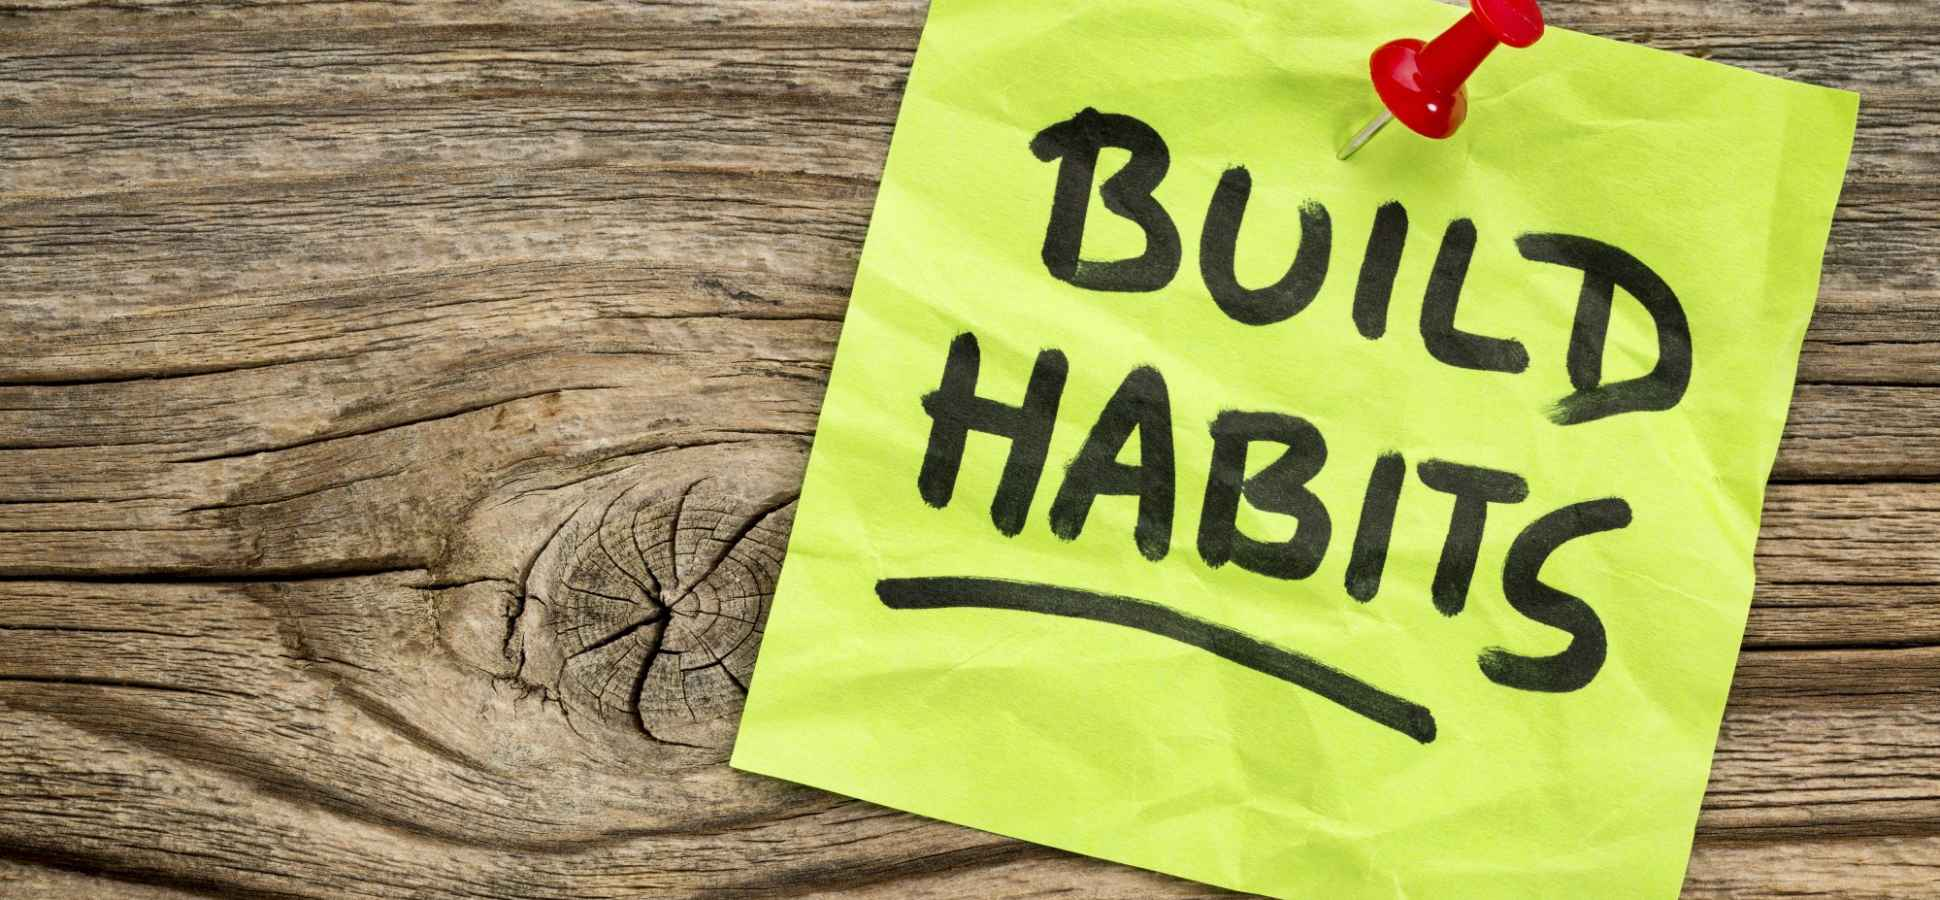 3 Habits of Highly Effective Entrepreneurs